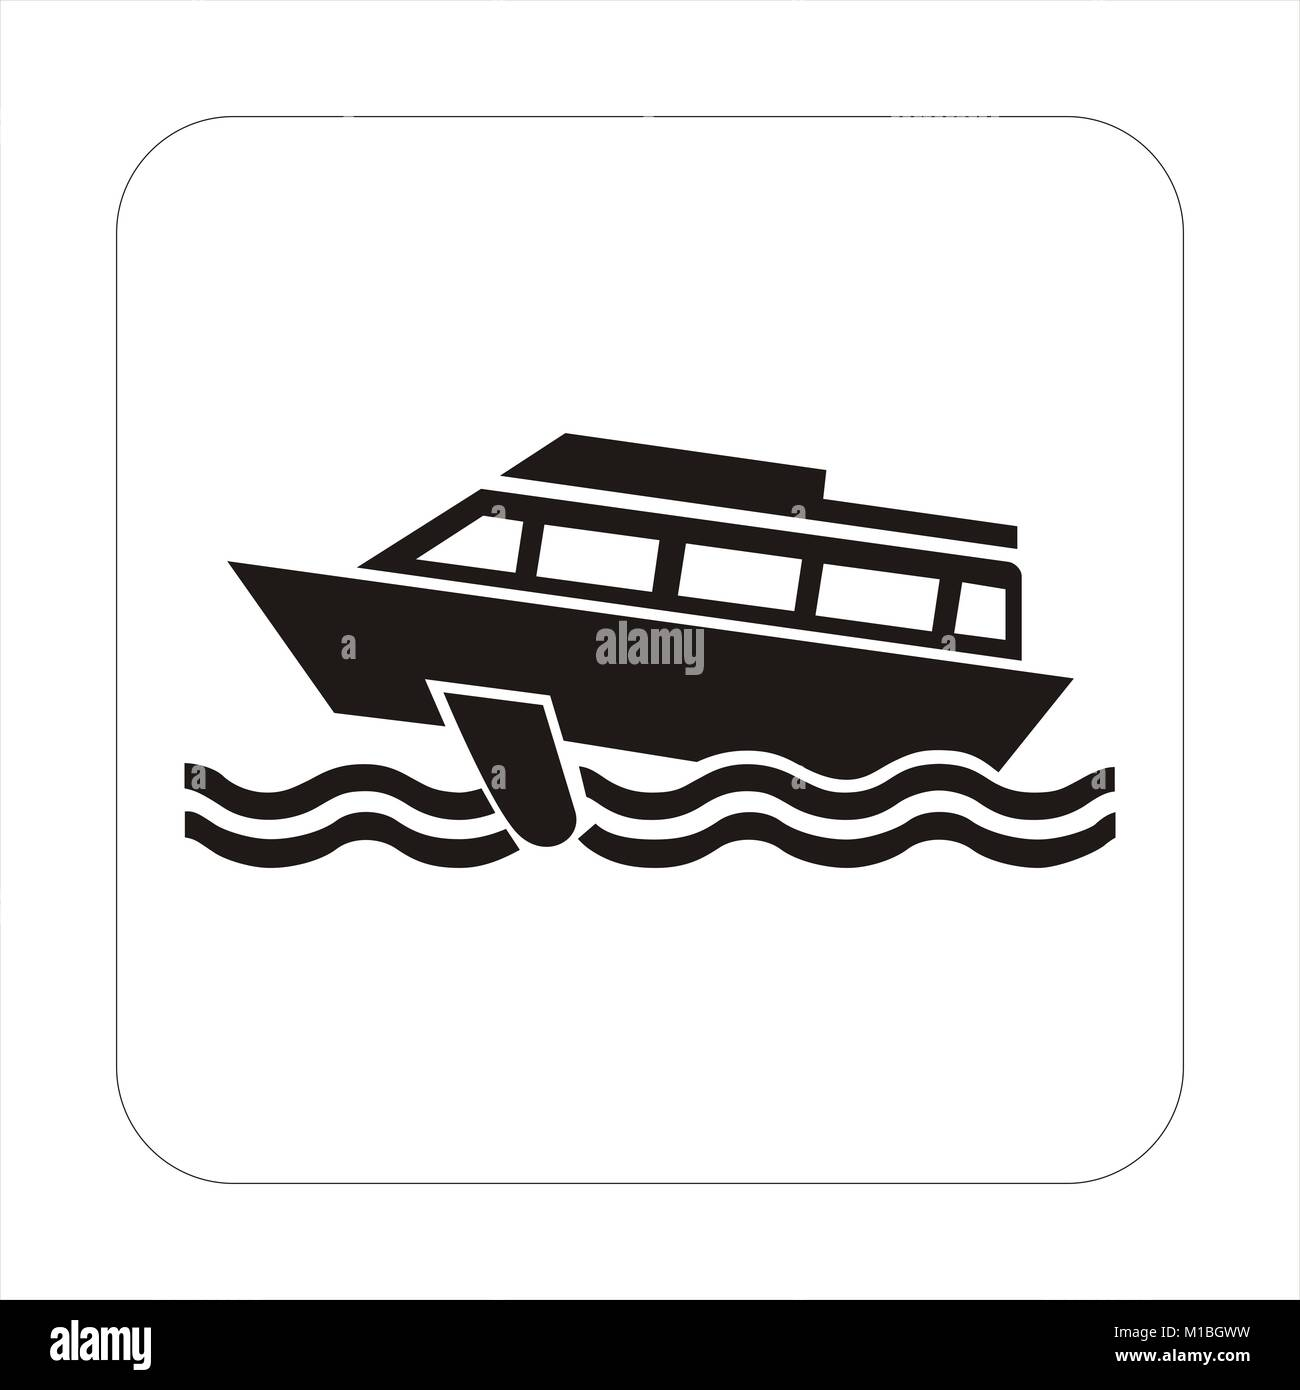 River bus icongraphic - Stock Image